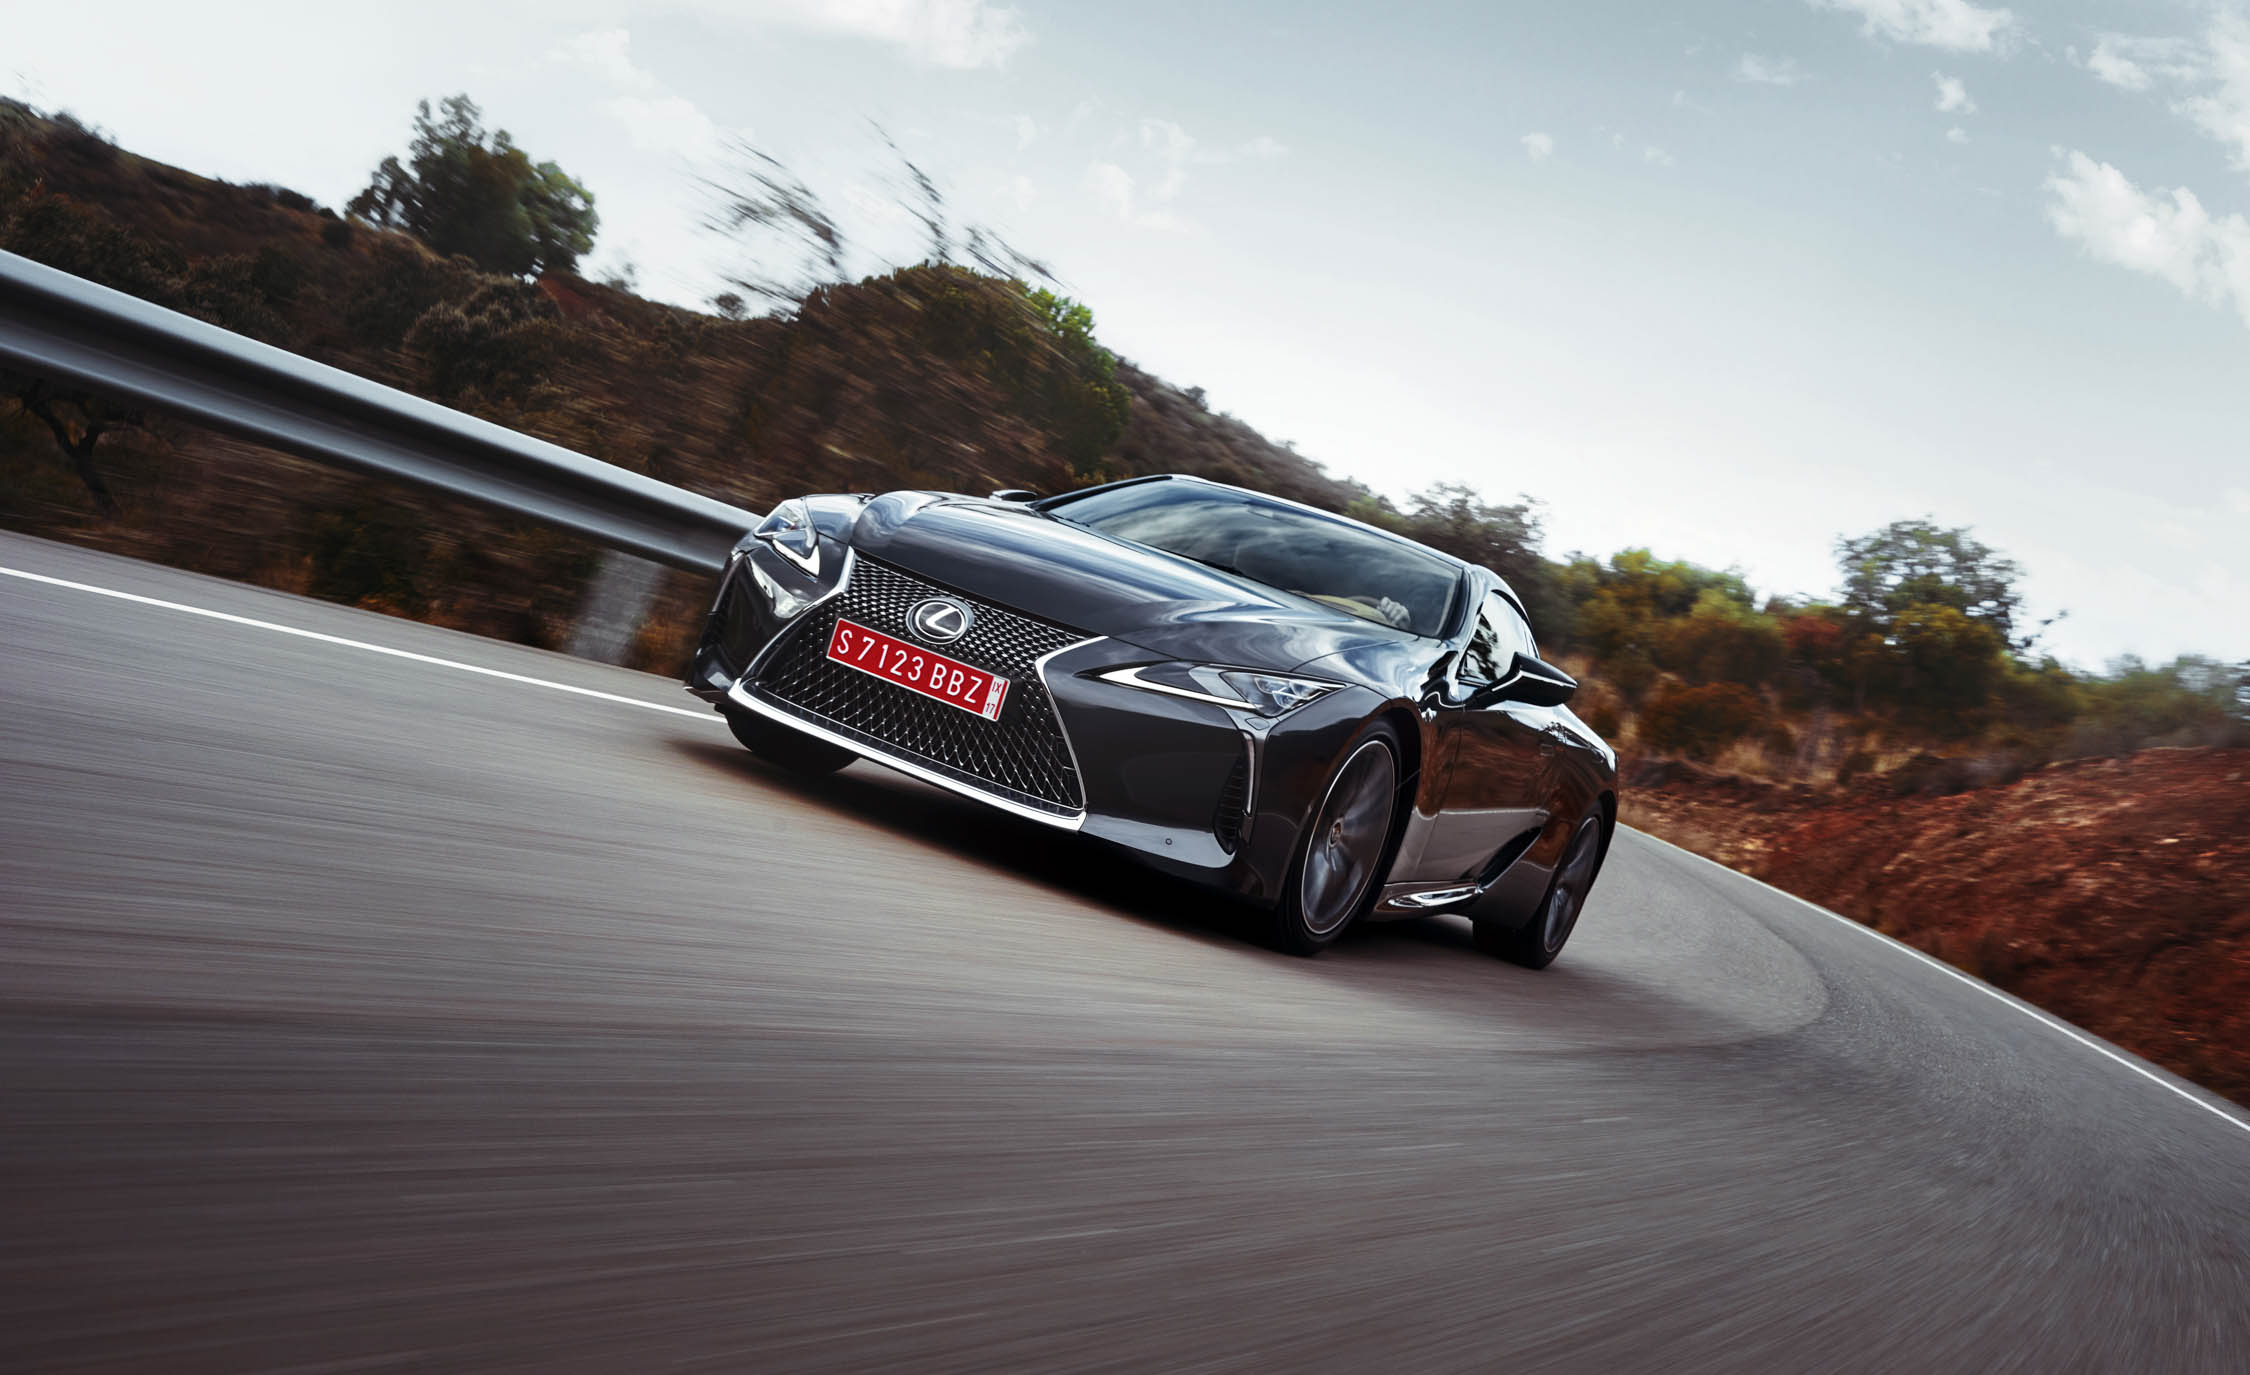 2018 Lexus Lc 500 Black (View 60 of 84)